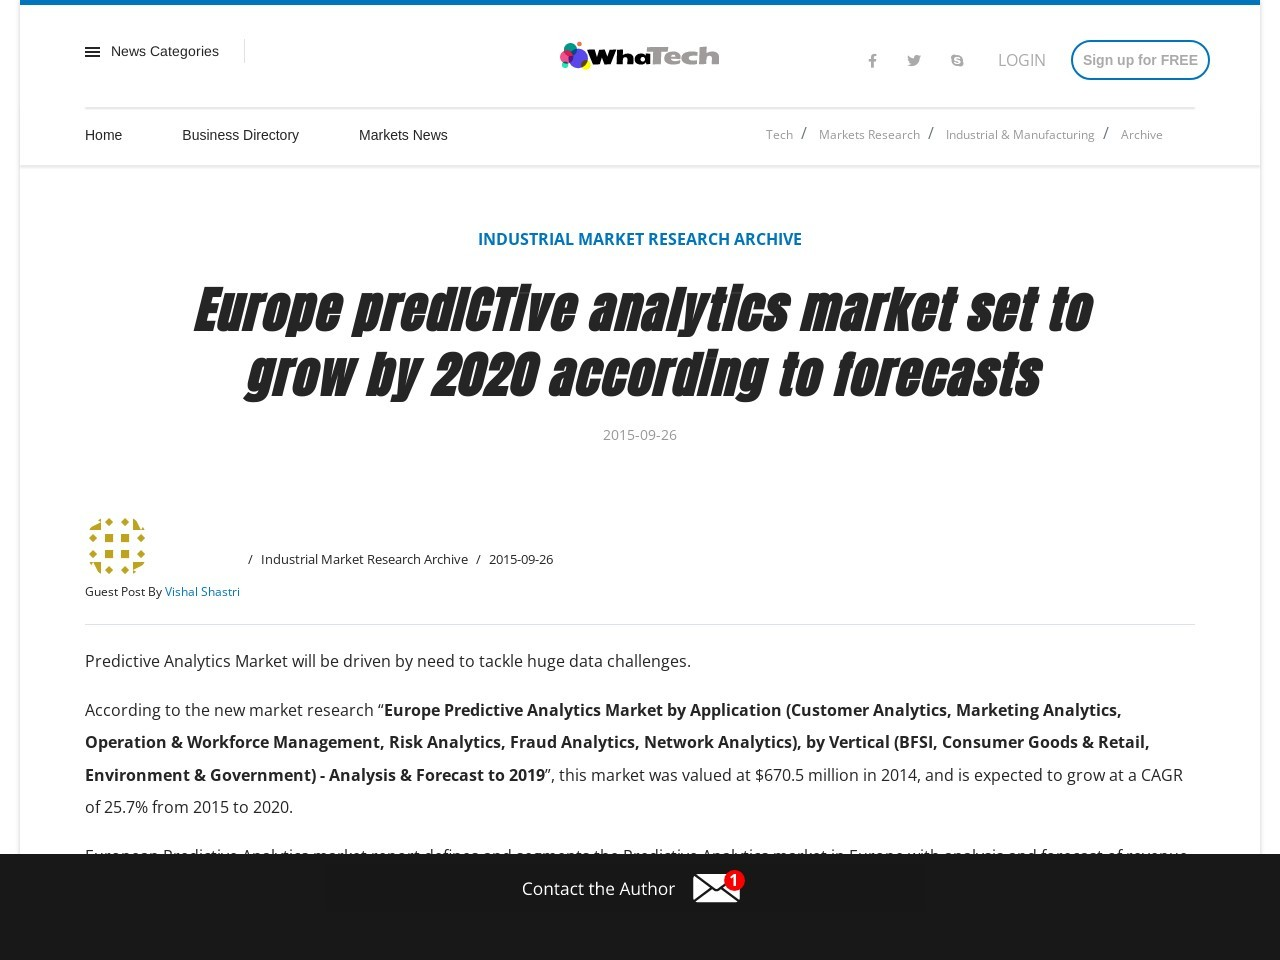 Europe predICTive analytics market set to grow by 2020 according to forecasts